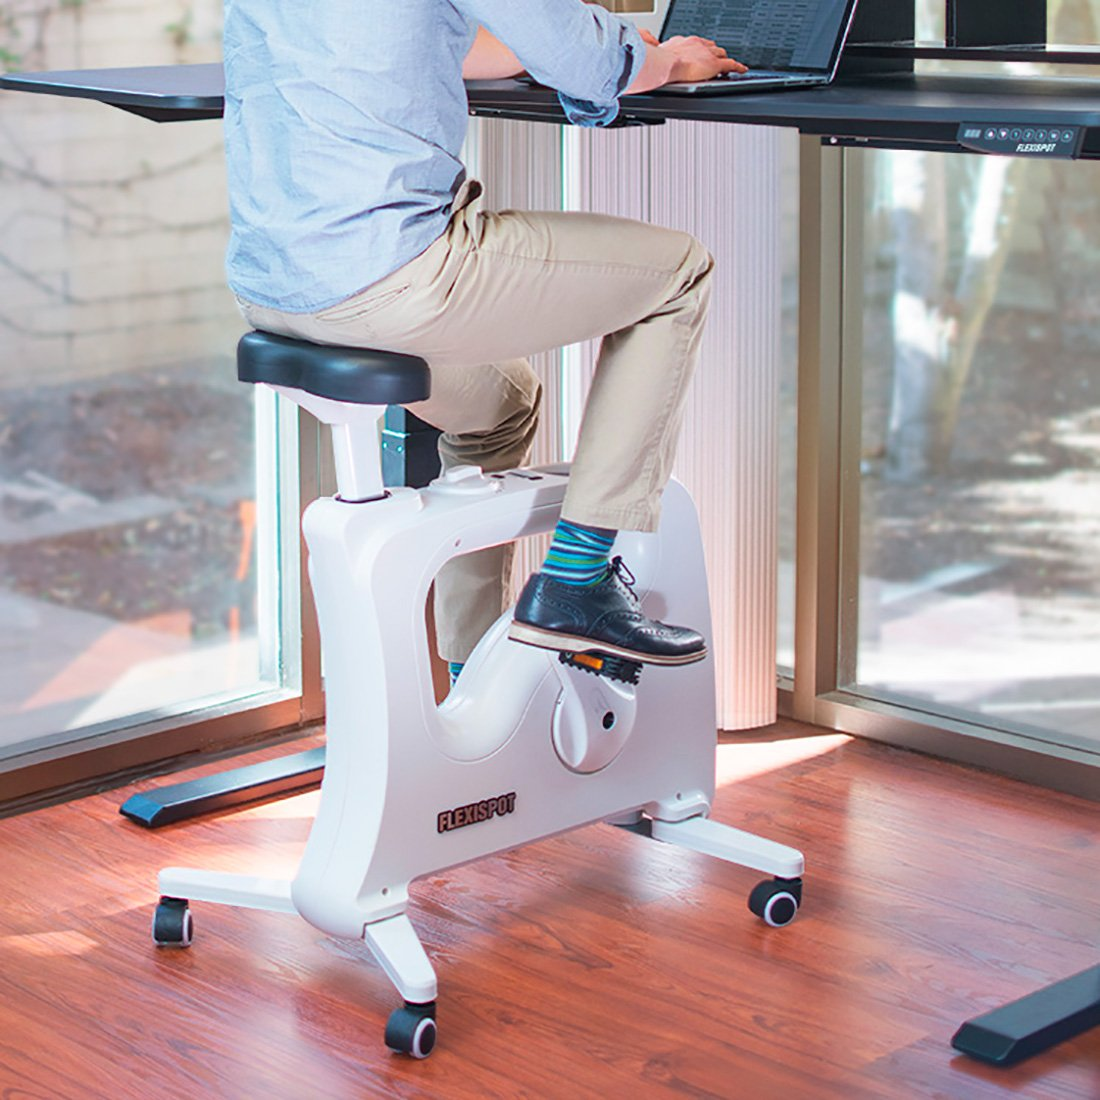 FLEXISPOT Home Office Under Desk Exercise Bike Height Adjustable Cycle - Deskcise Pro by FLEXISPOT (Image #1)